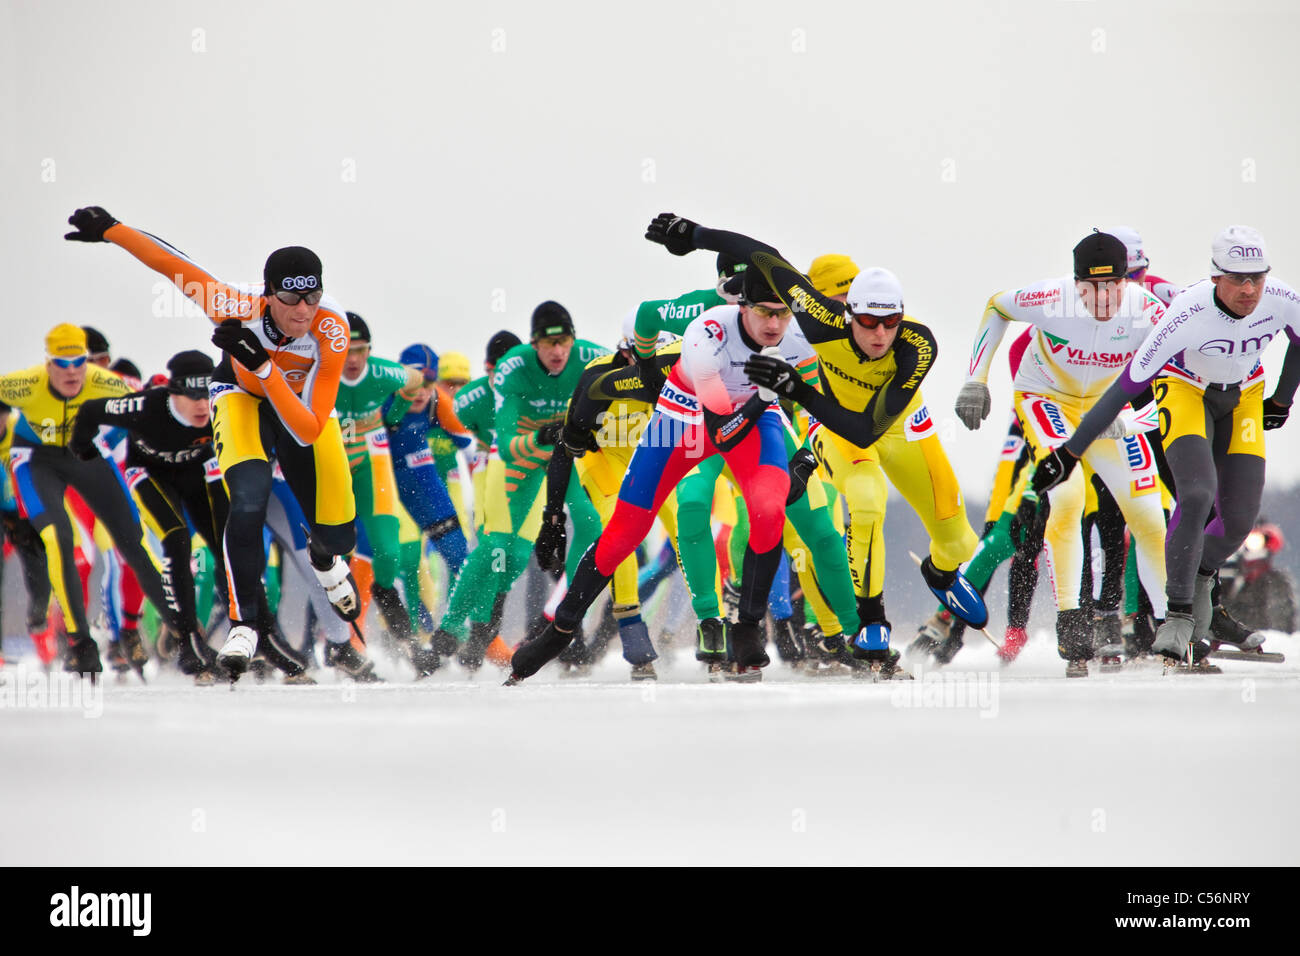 The Netherlands, Loosdrecht, 100km ice skating match on natural ice. - Stock Image